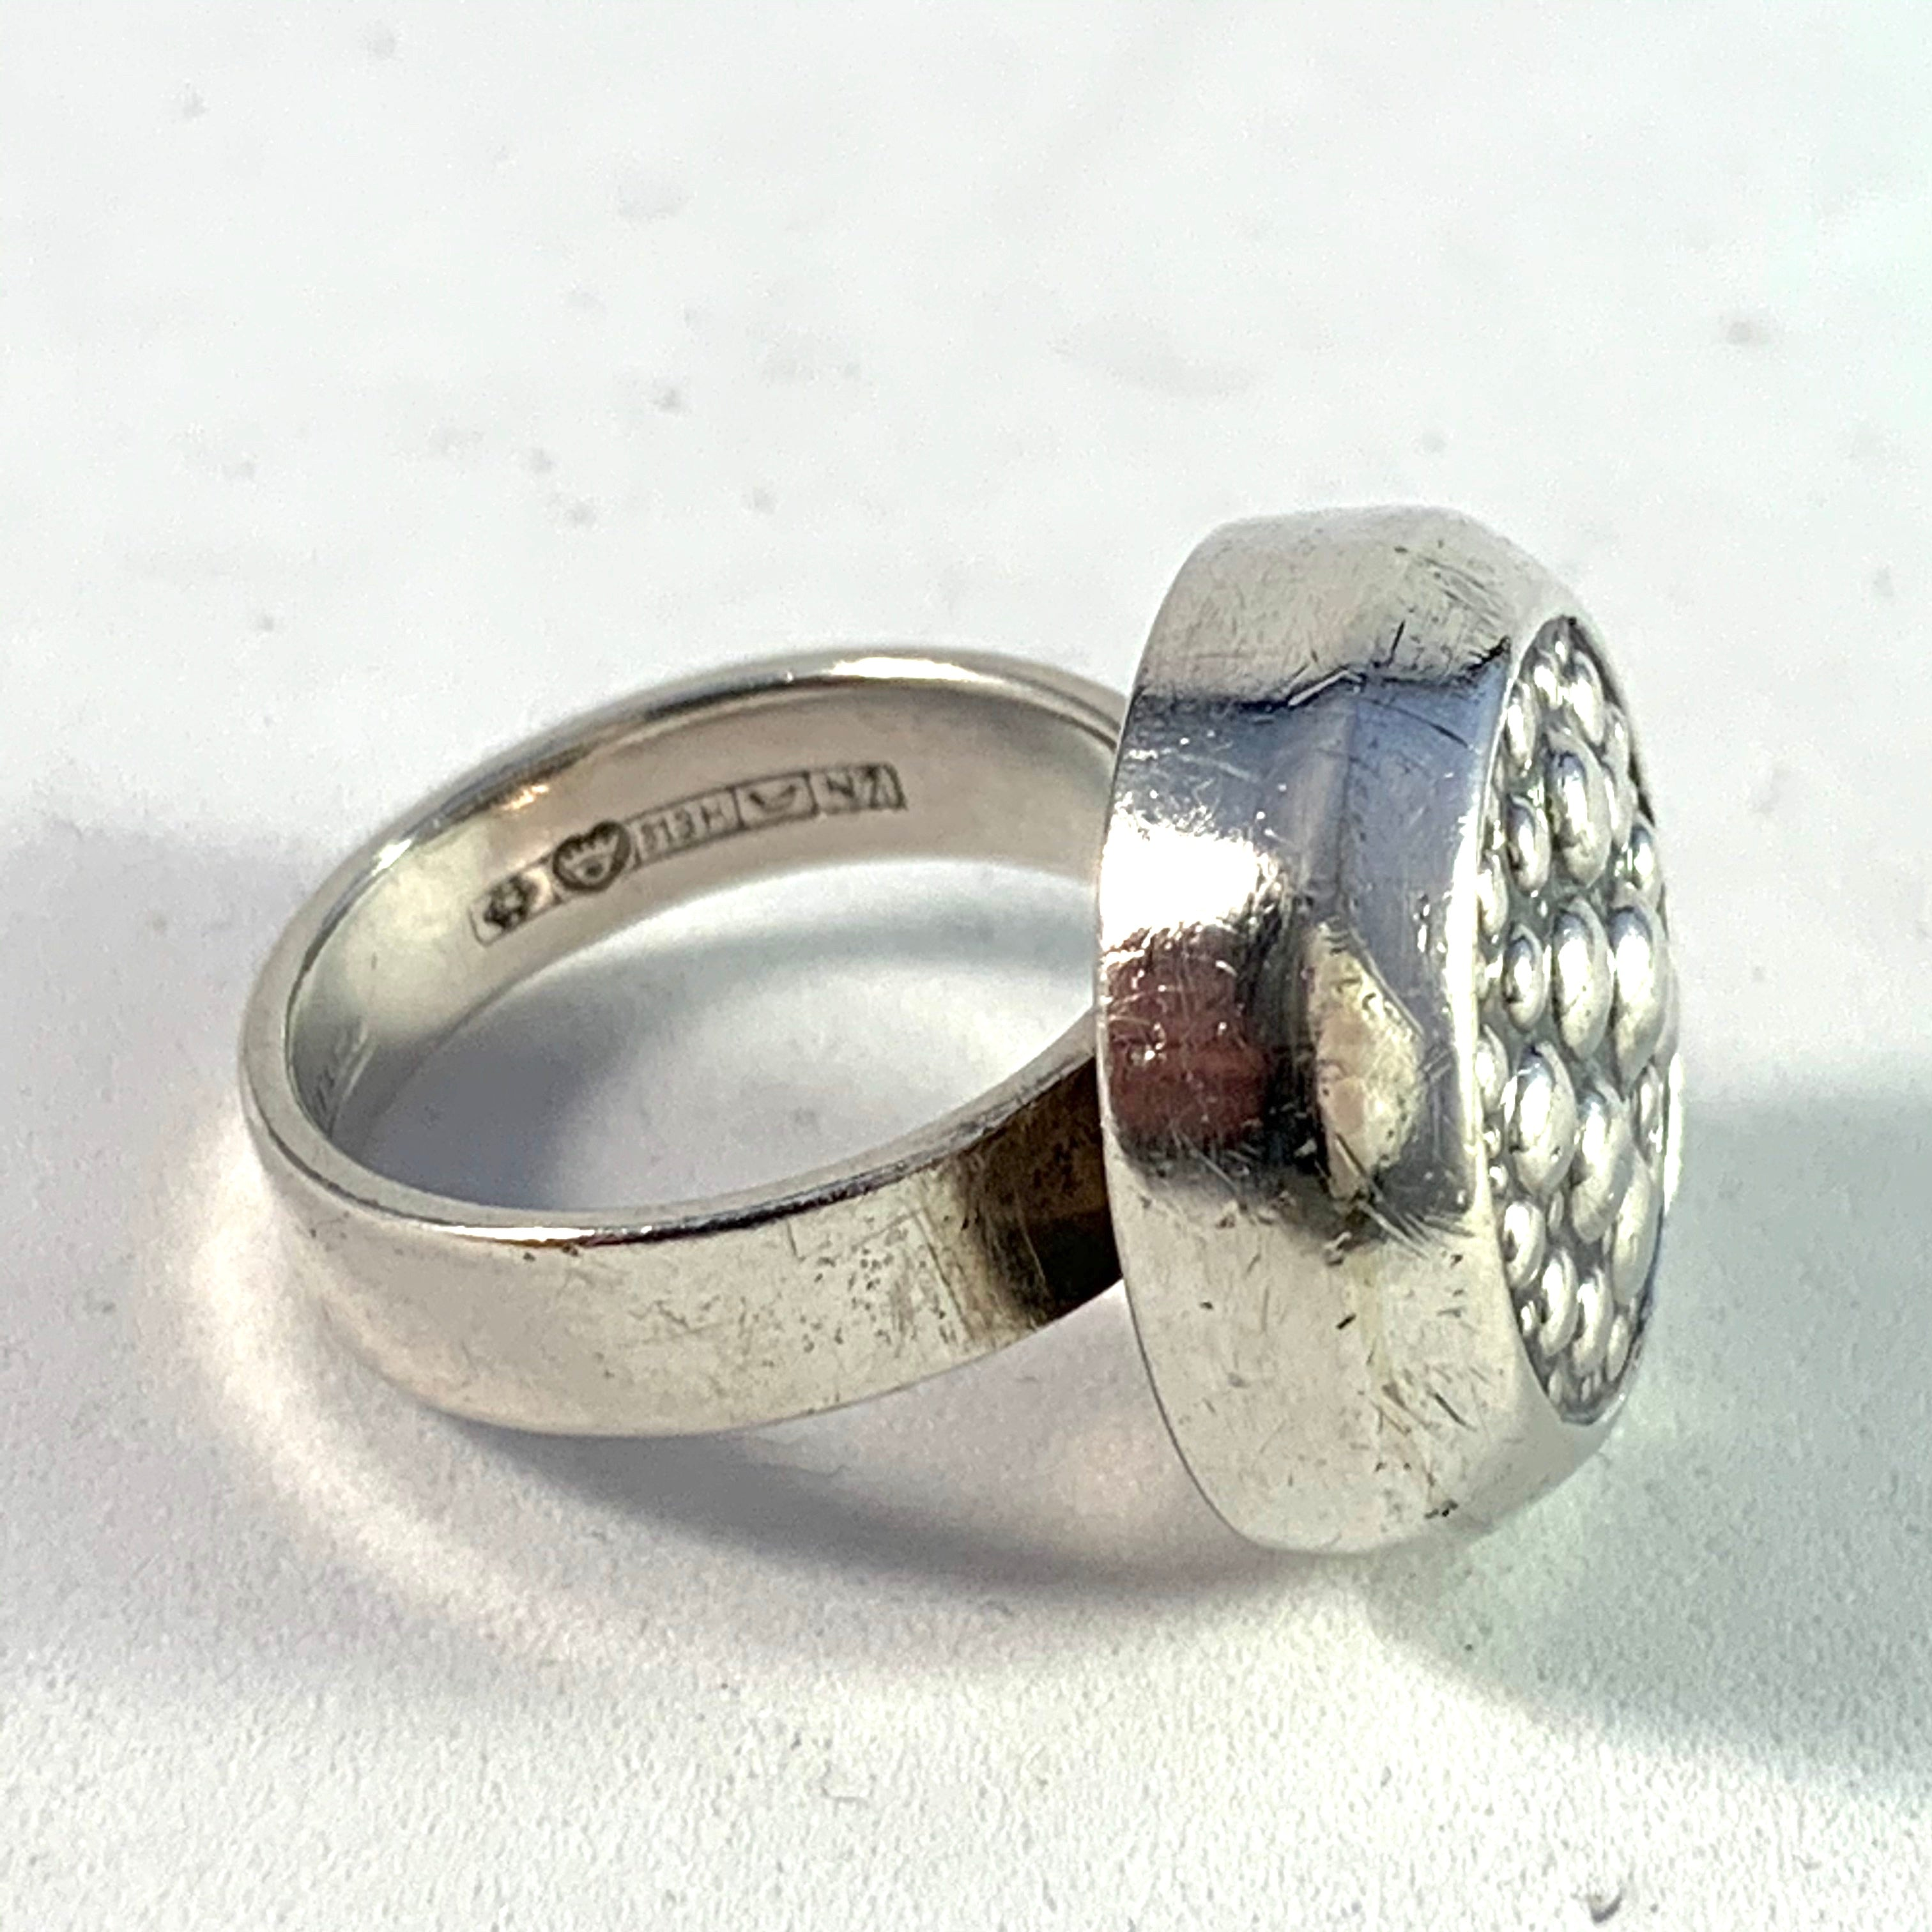 Erik Granit , Finland year 1966 Modernist Solid Silver Ring